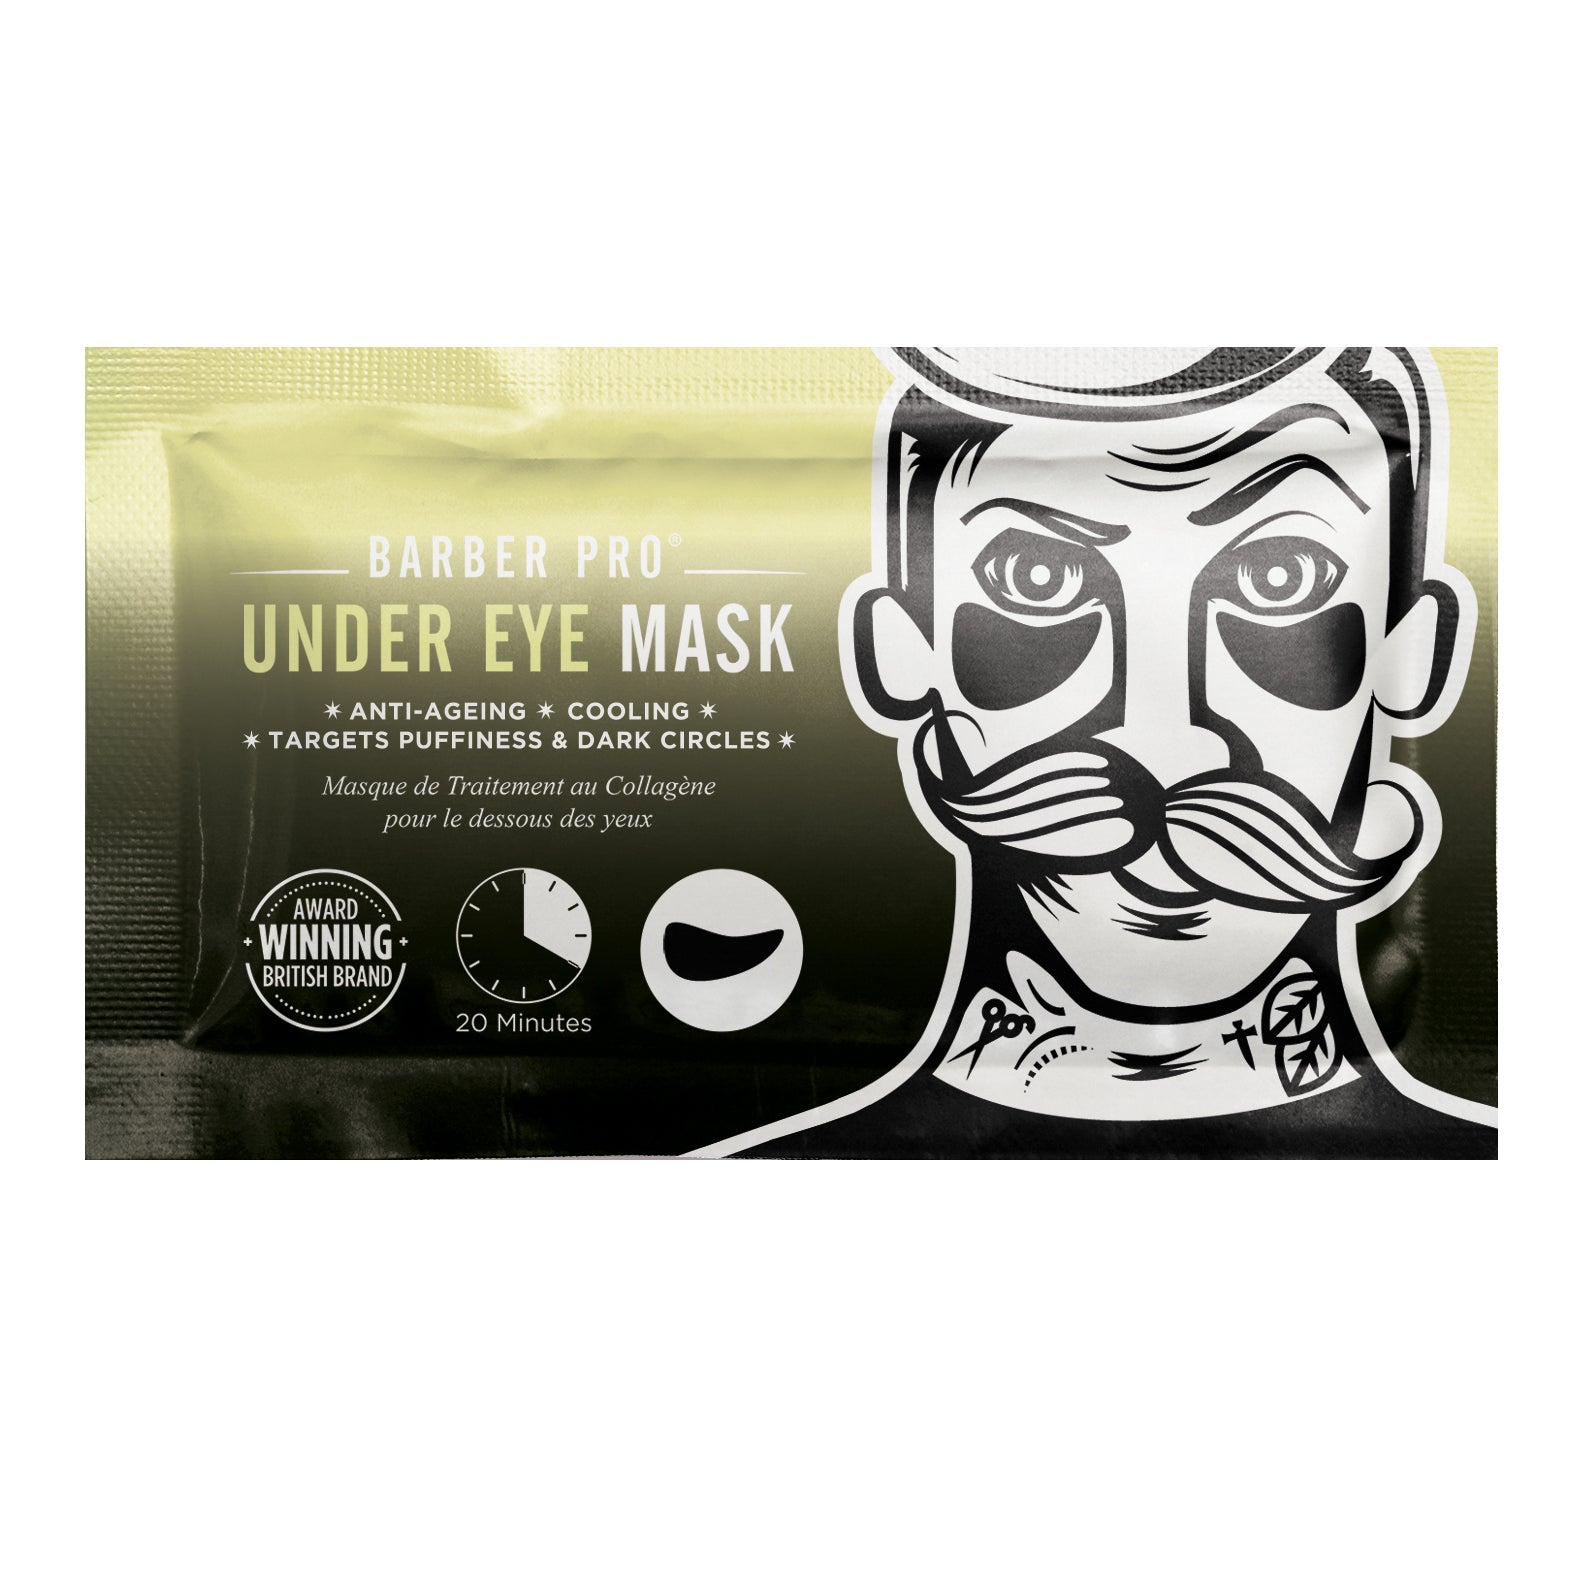 BARBER PRO UNDER EYE MASK with Activated Charcoal & Volcanic Ash